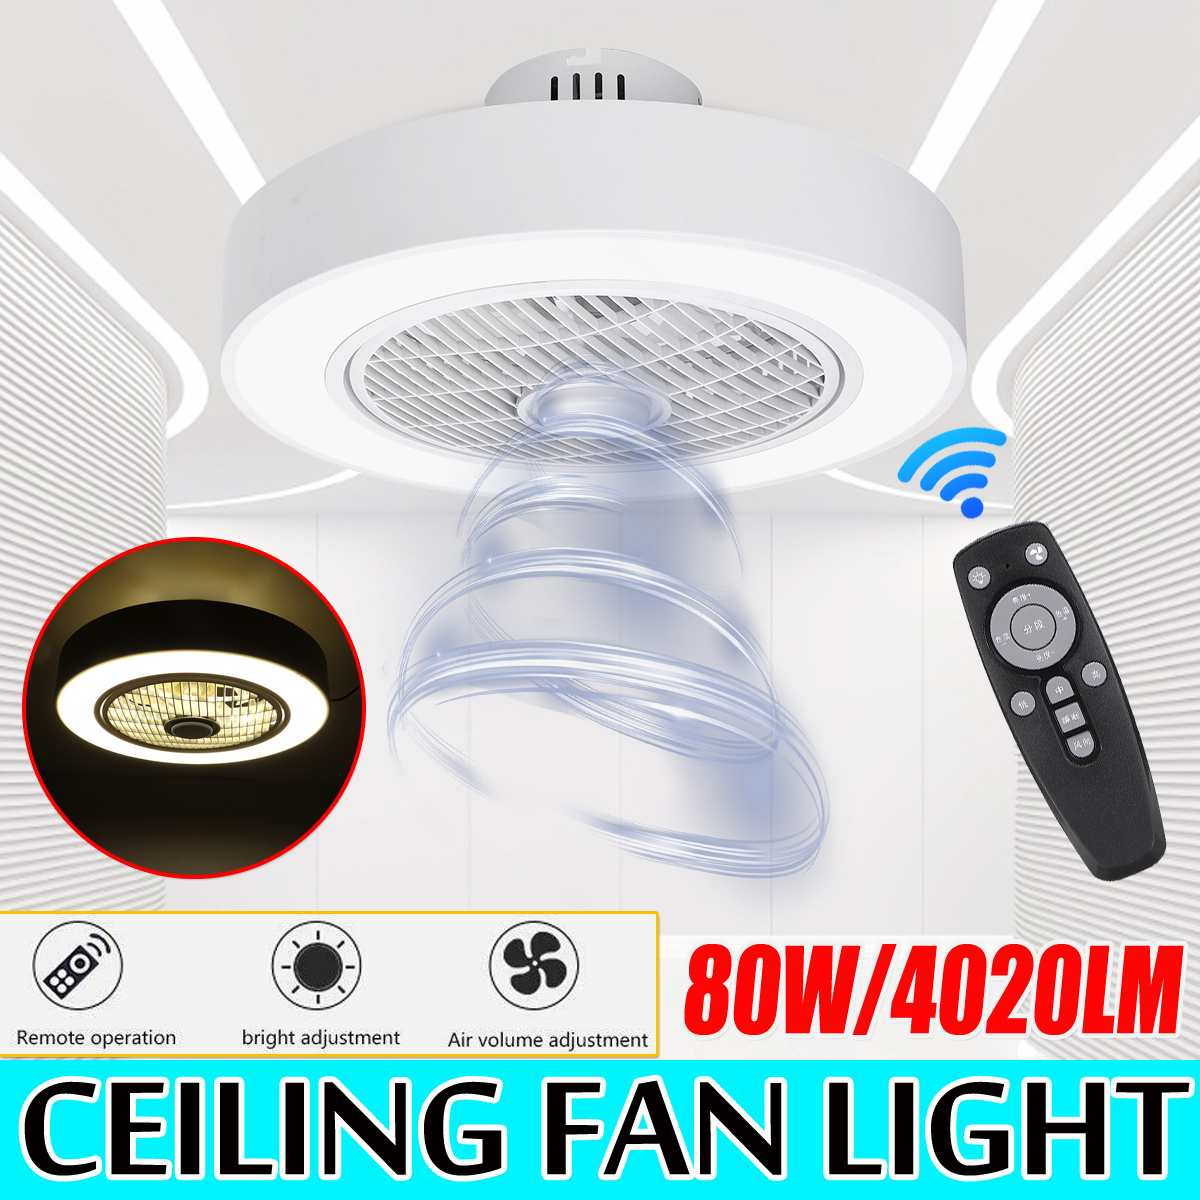 Ceiling Fan Lamp Remote Control three-color dimming ceiling fan light Modern Acrylic Light White Decor Light for Home AC185-250V